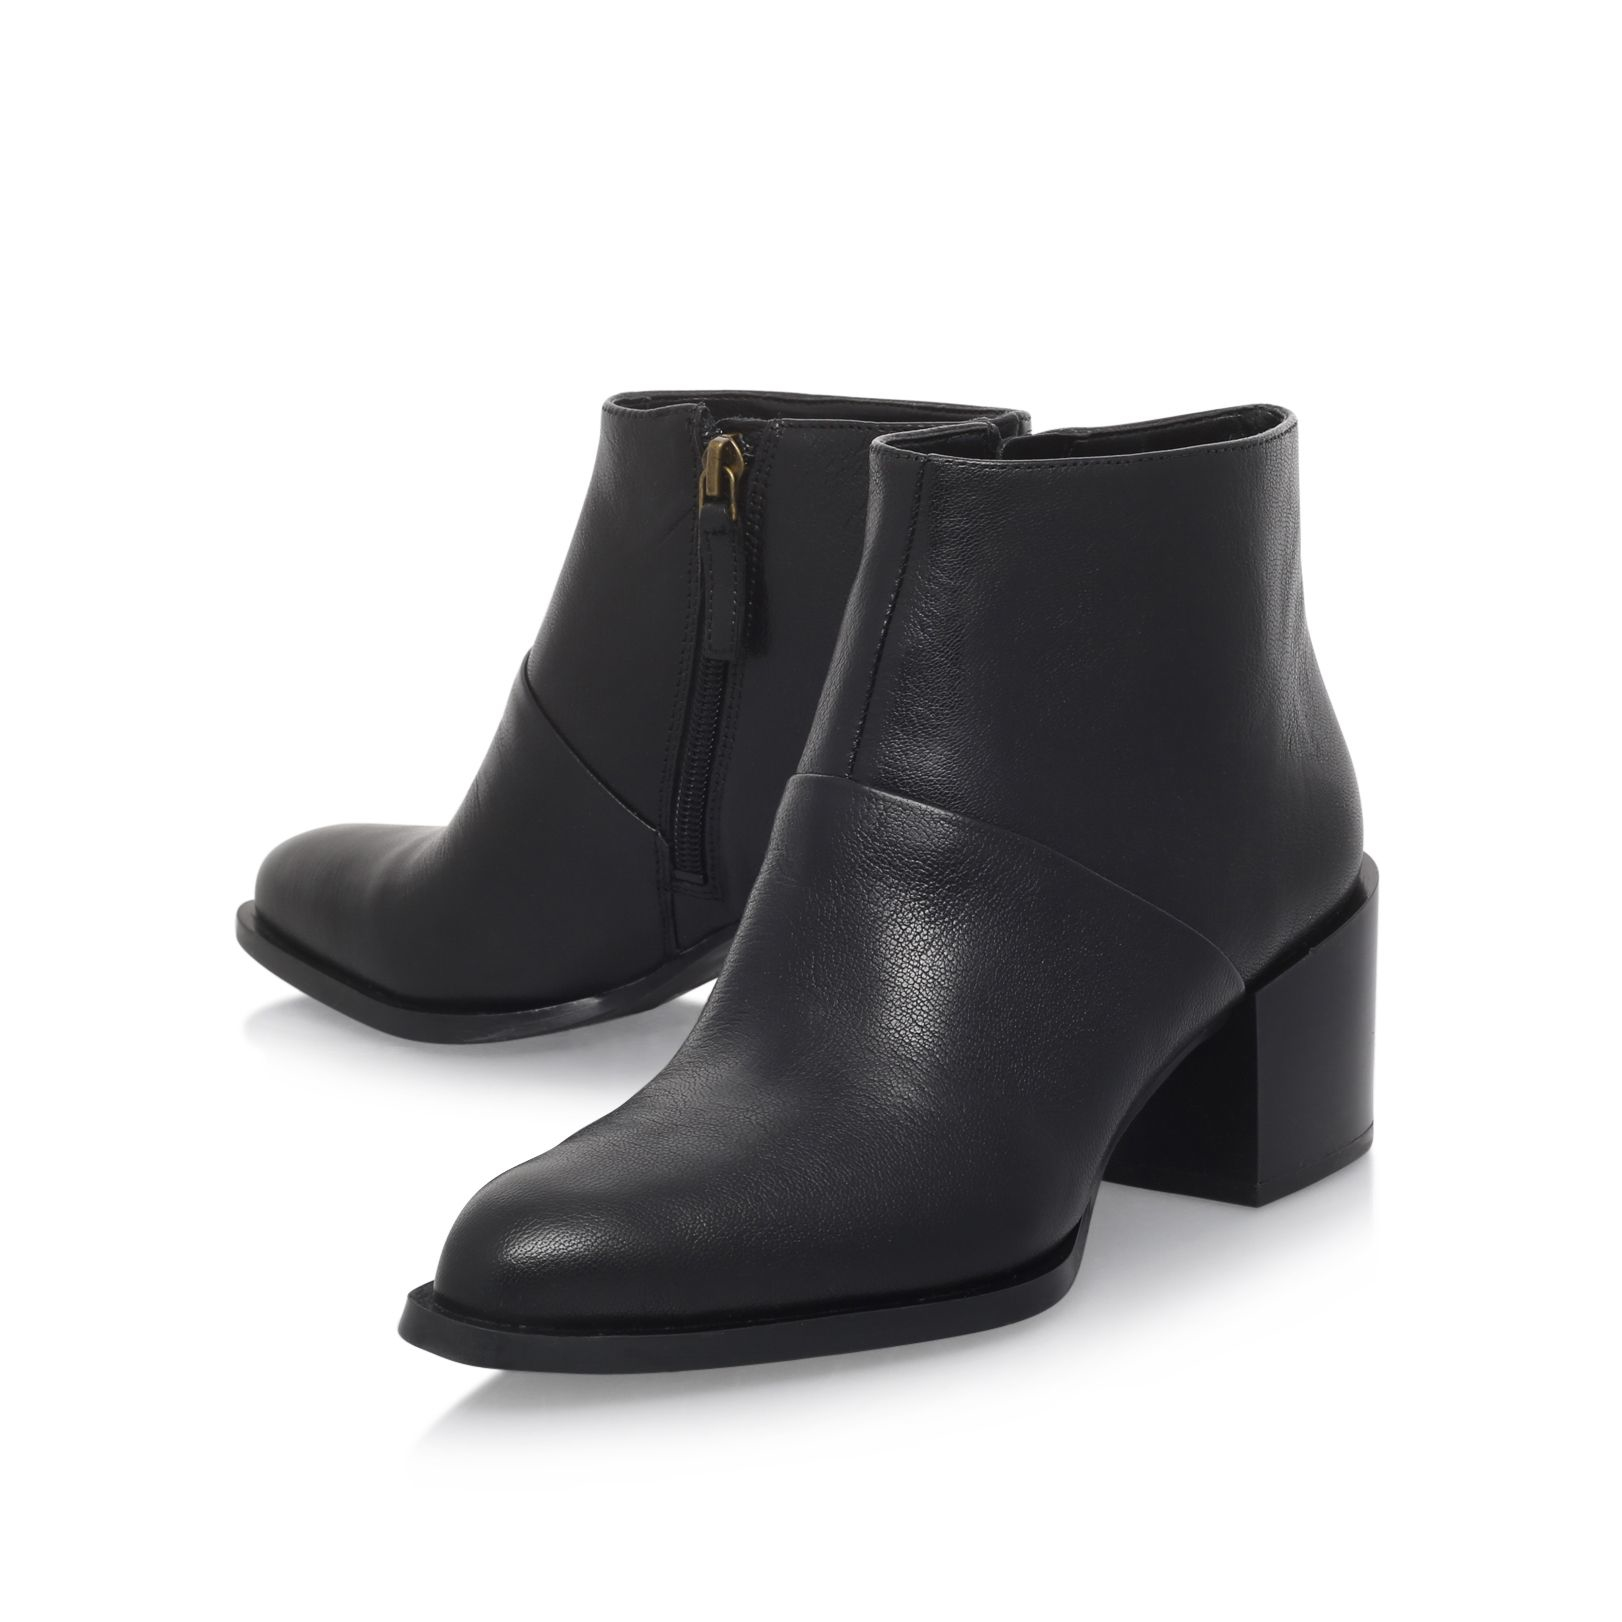 Nine West Leather Entity Mid Heel Ankle Boots in Black